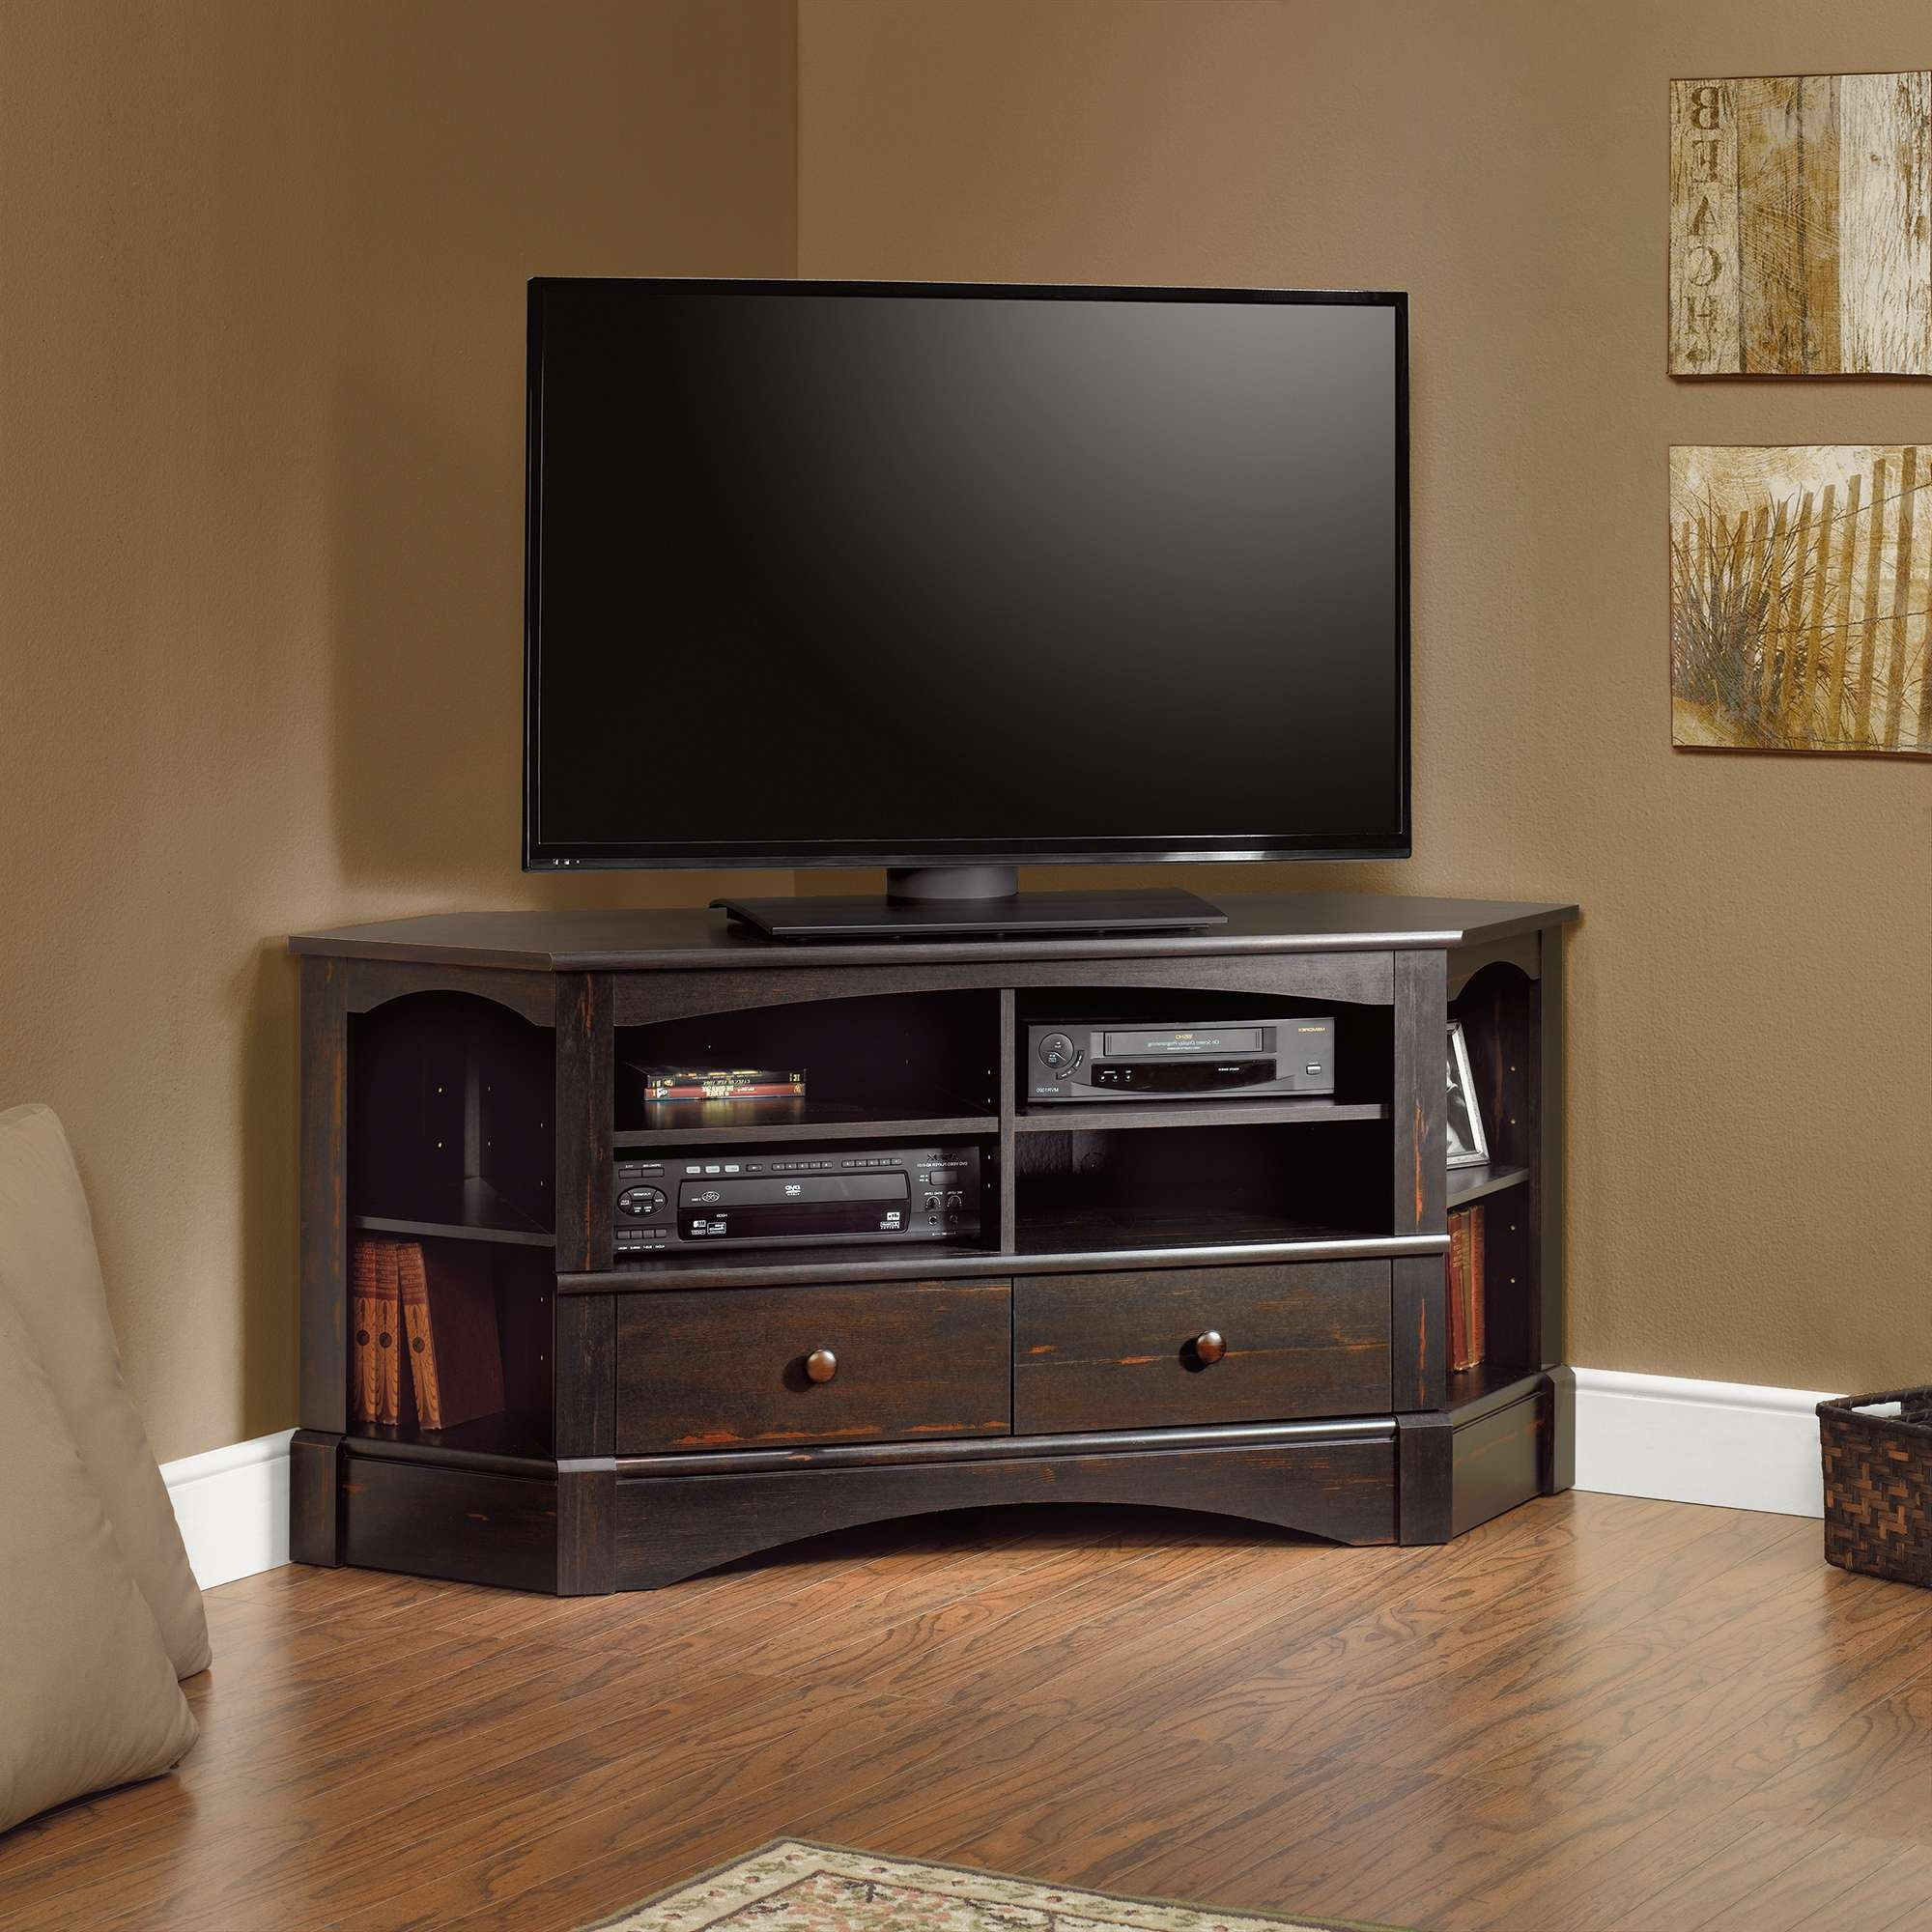 Tall Tv Stand For Bedroom Trends Ideas Corner Creative Cabinets With Regard To Tall Tv Cabinets Corner Unit (View 13 of 20)